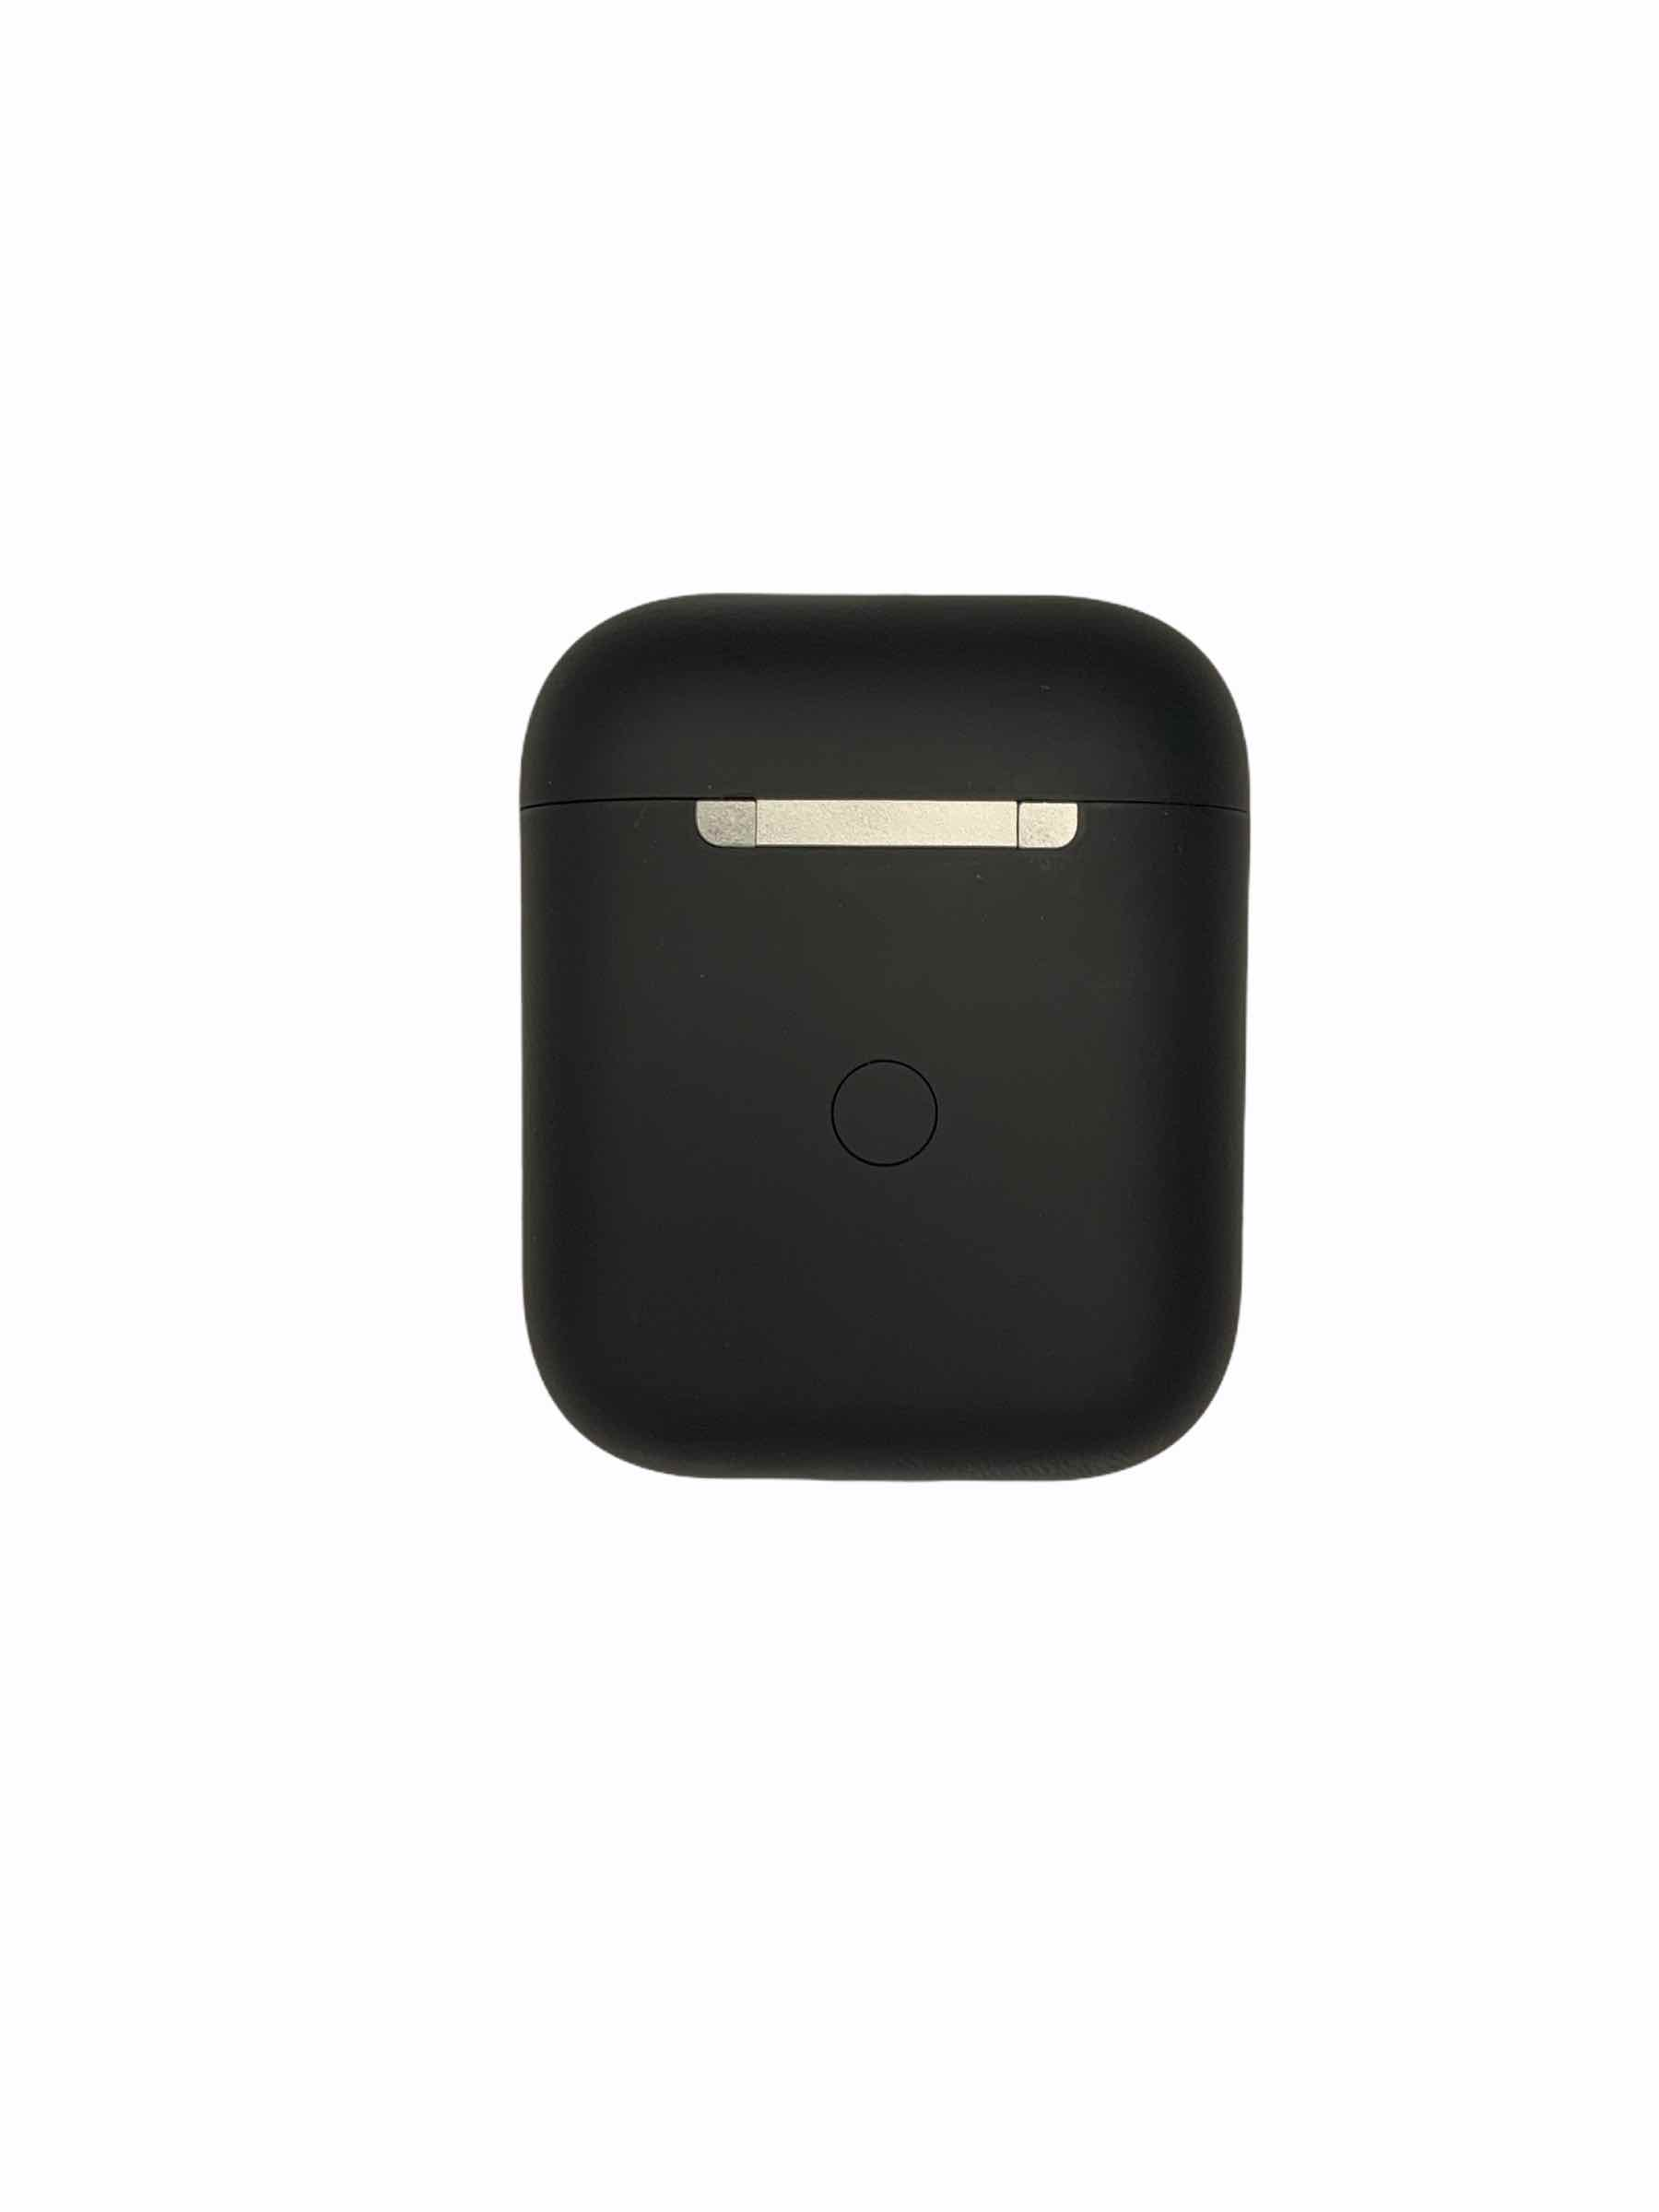 Airpods - black pods - bluetooth headset - draadloos oortjes